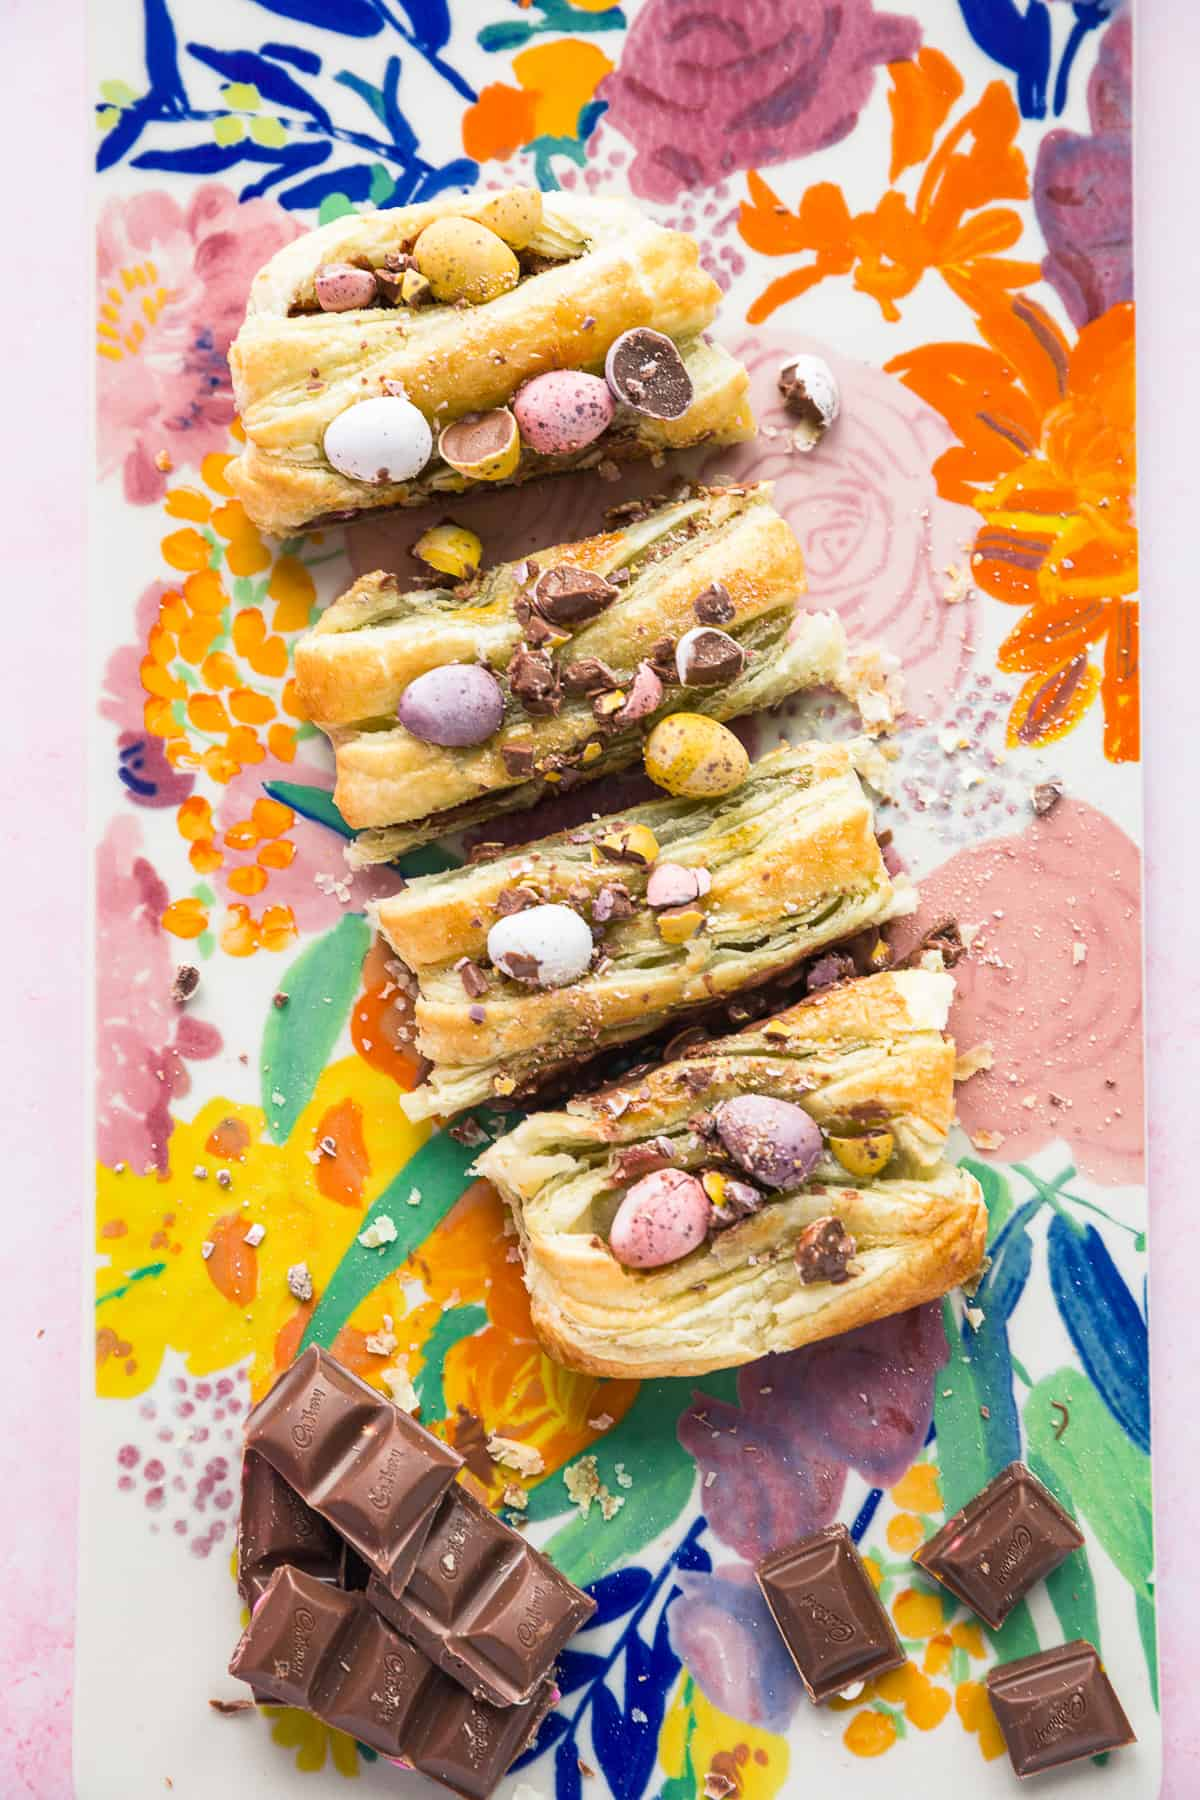 A chocolate stuffed Easter pastry.